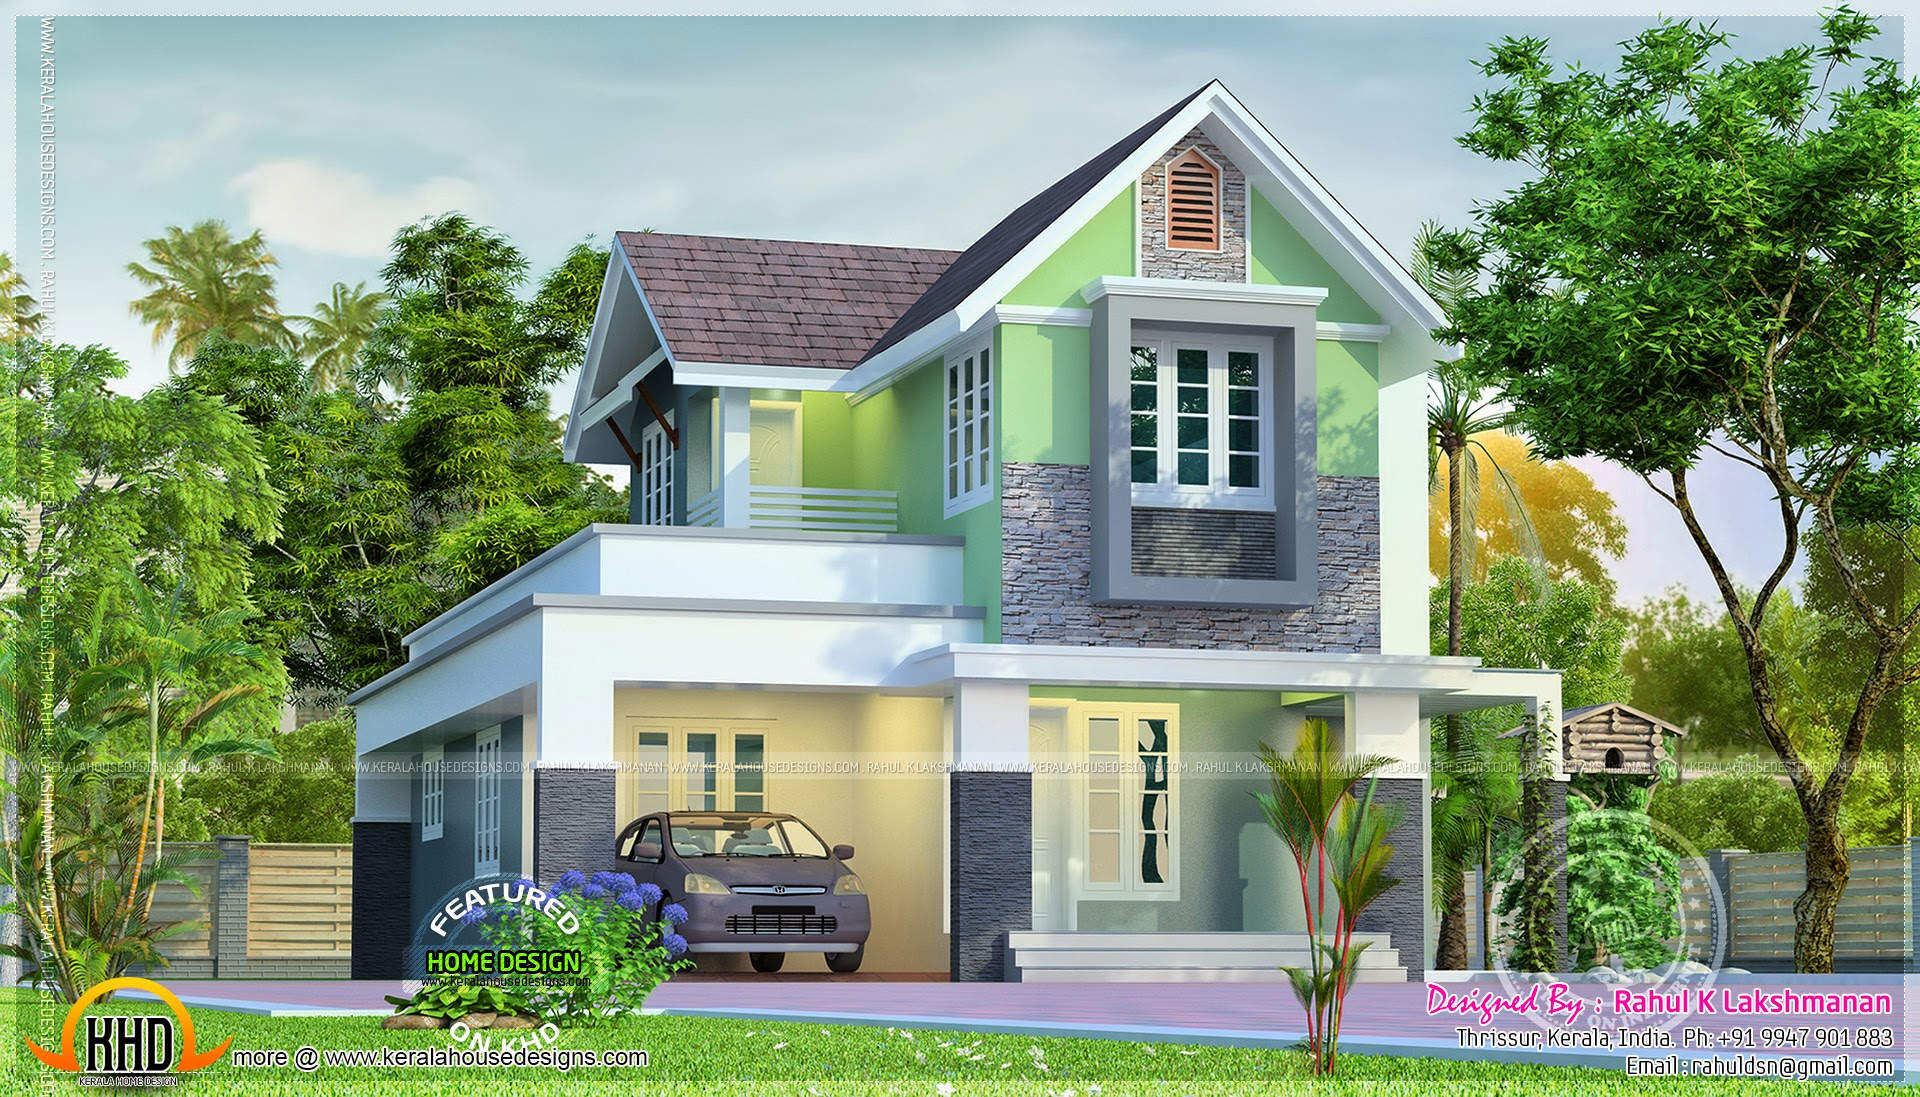 cute little house plan kerala home design and floor plans On cute home plans